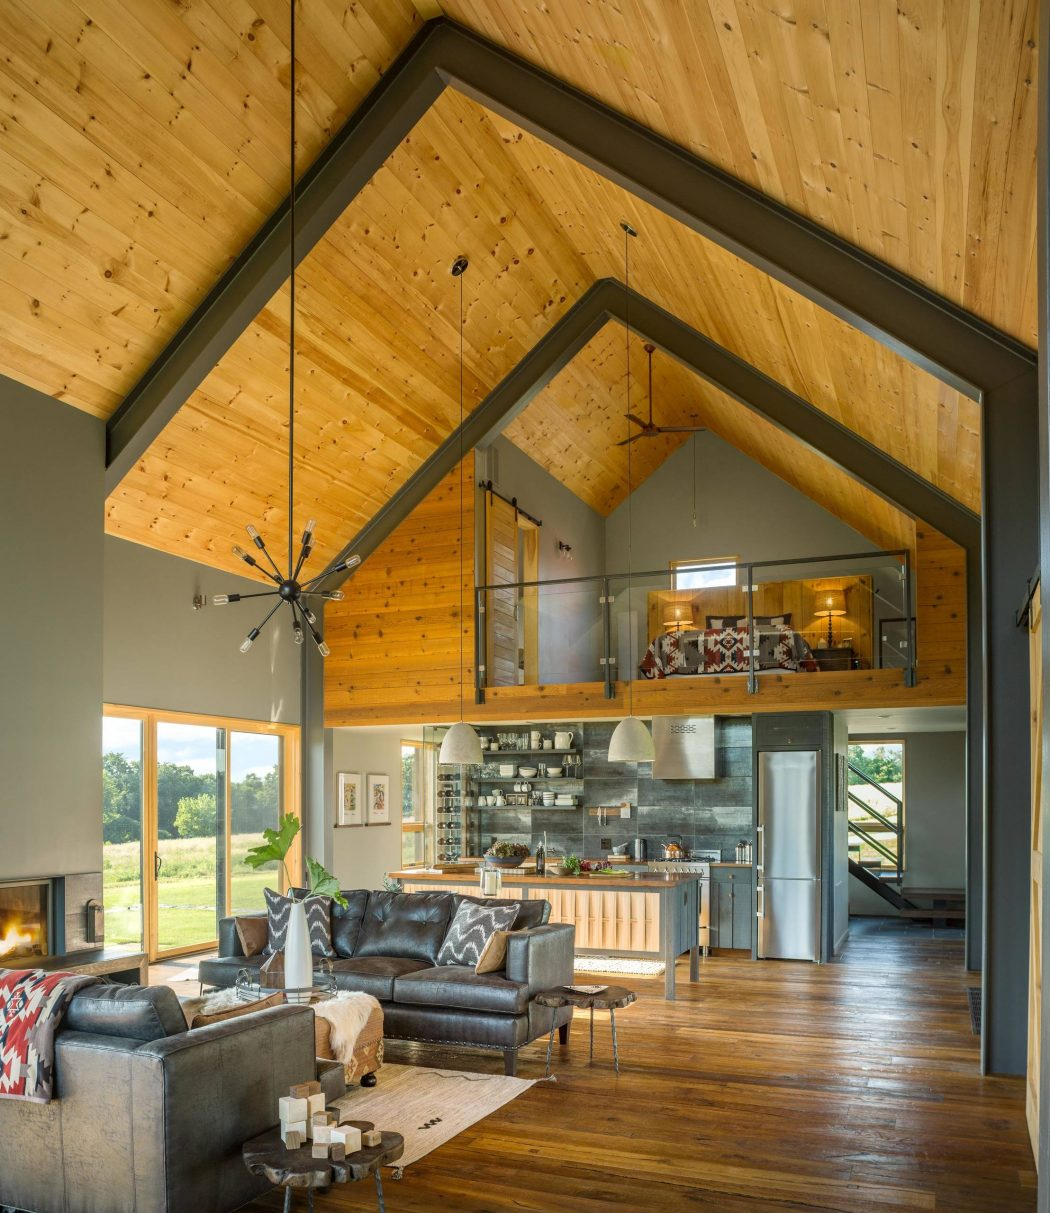 Furniture Modern Howchow Furniture Design For Cozy Home: Modern Barn By Joan Heaton Architects